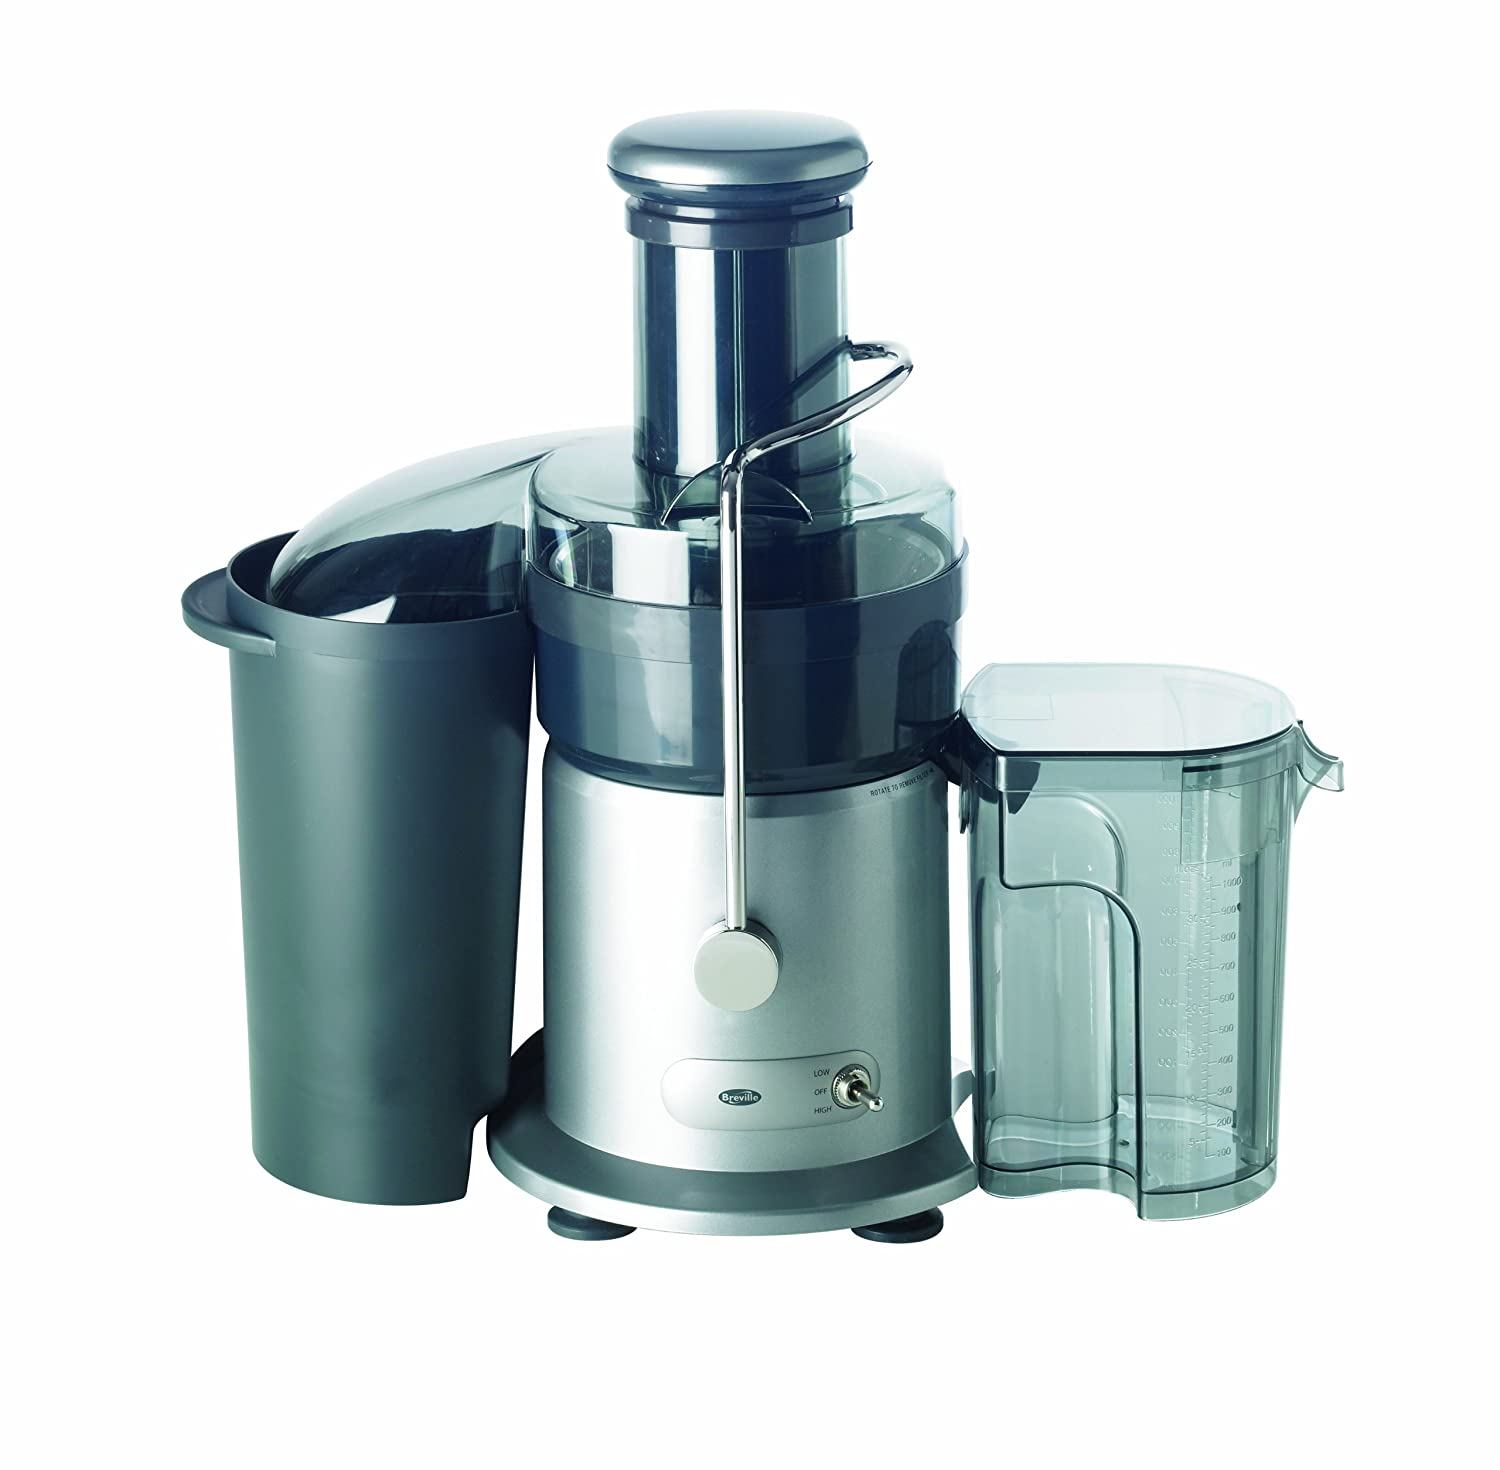 Breville JE15 Whole Fruit Juicer Review